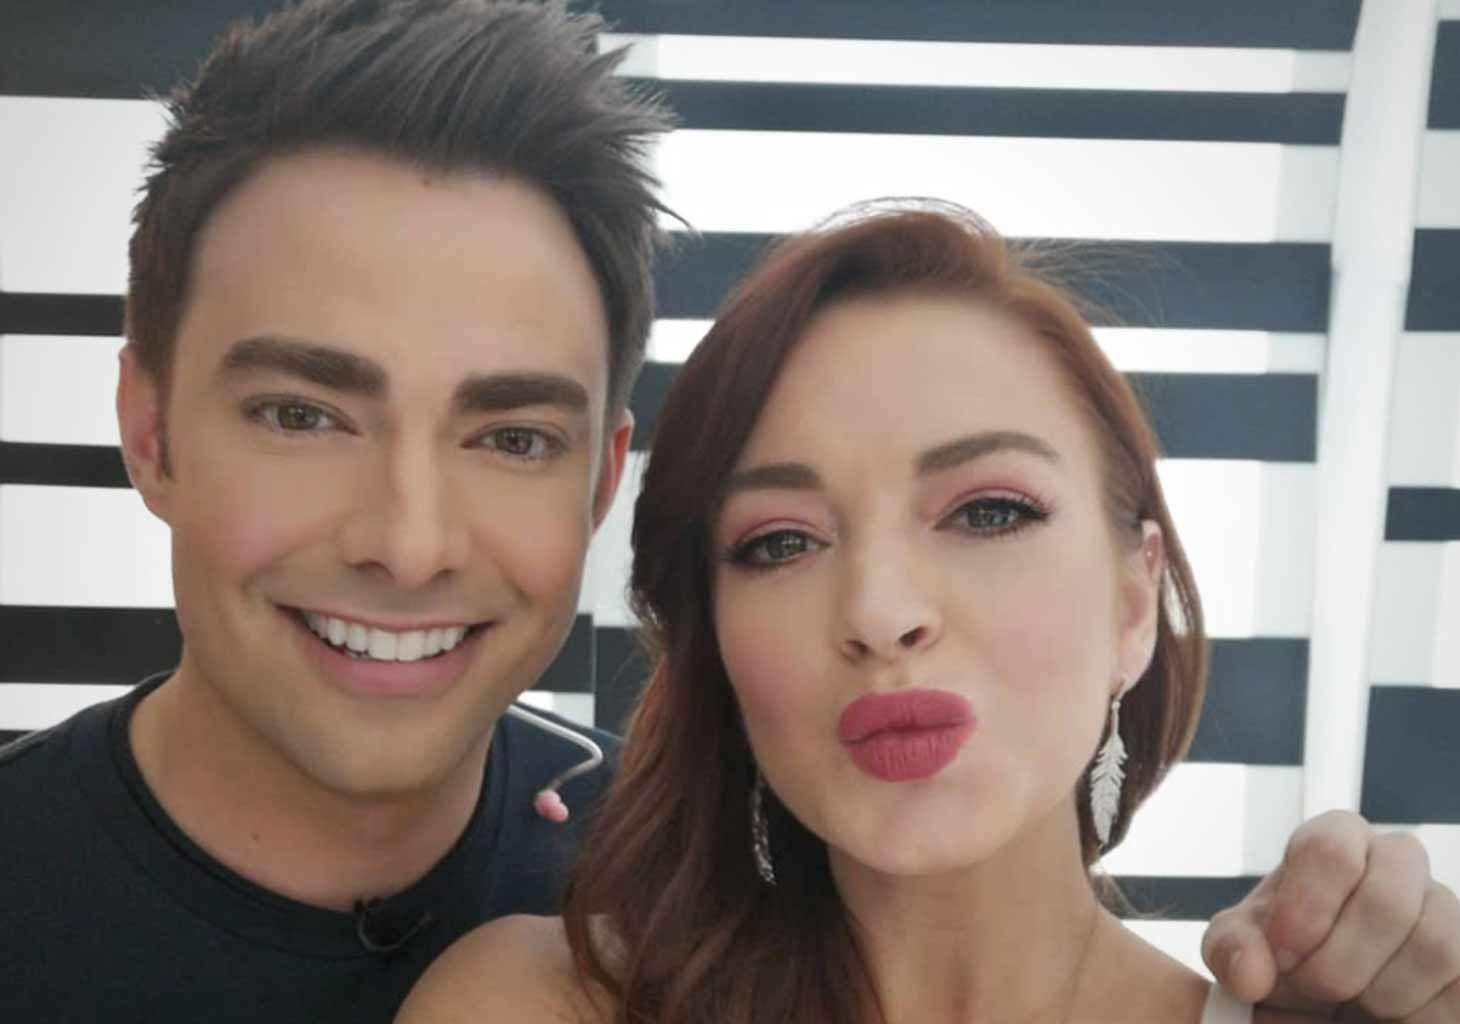 Jonathan Bennett Says His 'Mean Girls' Fans Supported Him A Lot When He Came Out - Here's How!